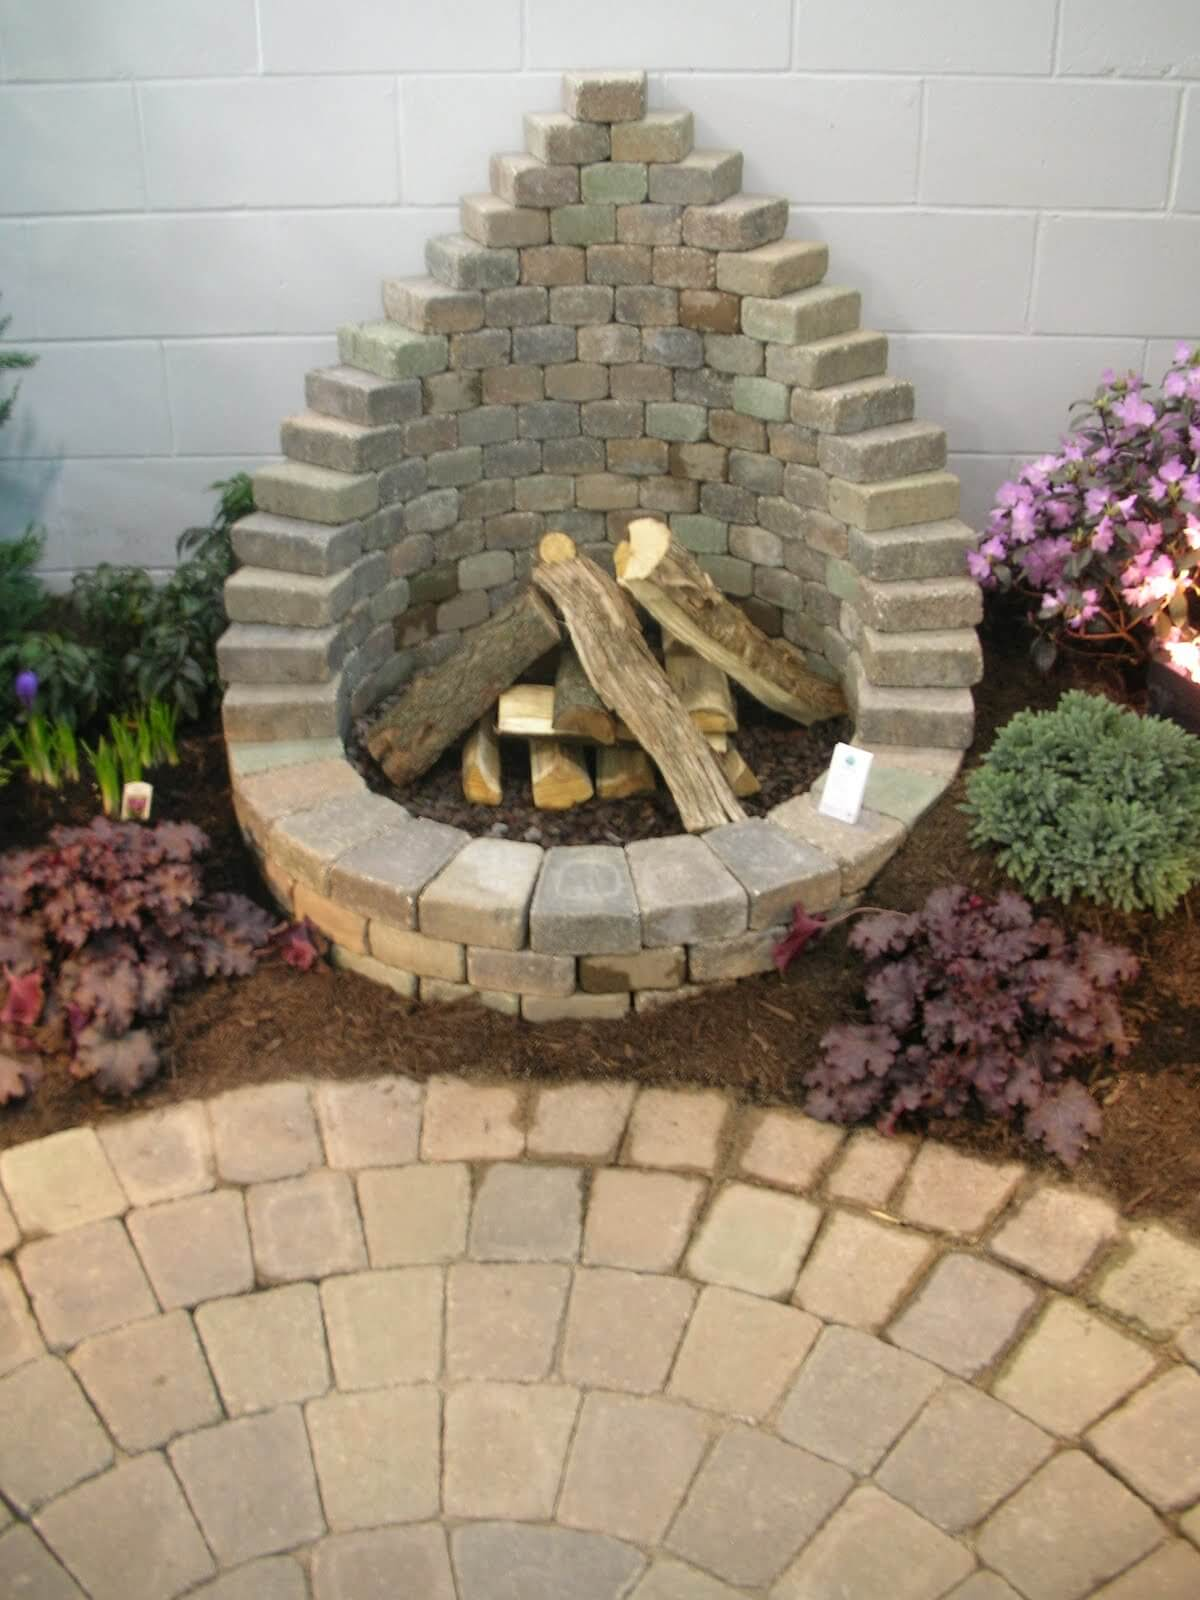 Teardrop-shaped fire pit. - 16 Awesome DIY Fire Pit Ideas For Your Yard